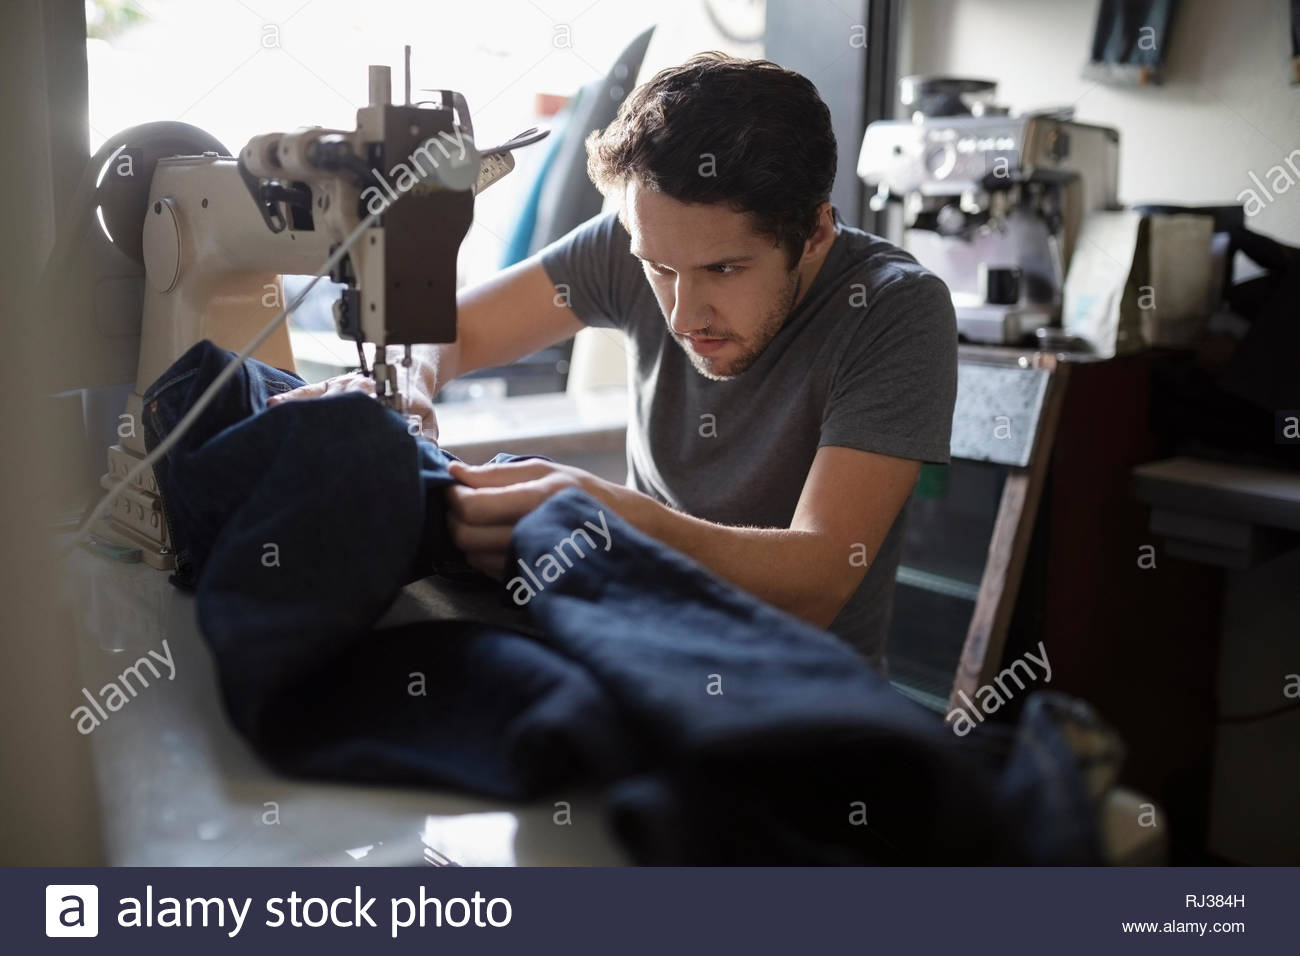 Focused male tailor using sewing machine in denim repair shop - Stock Image